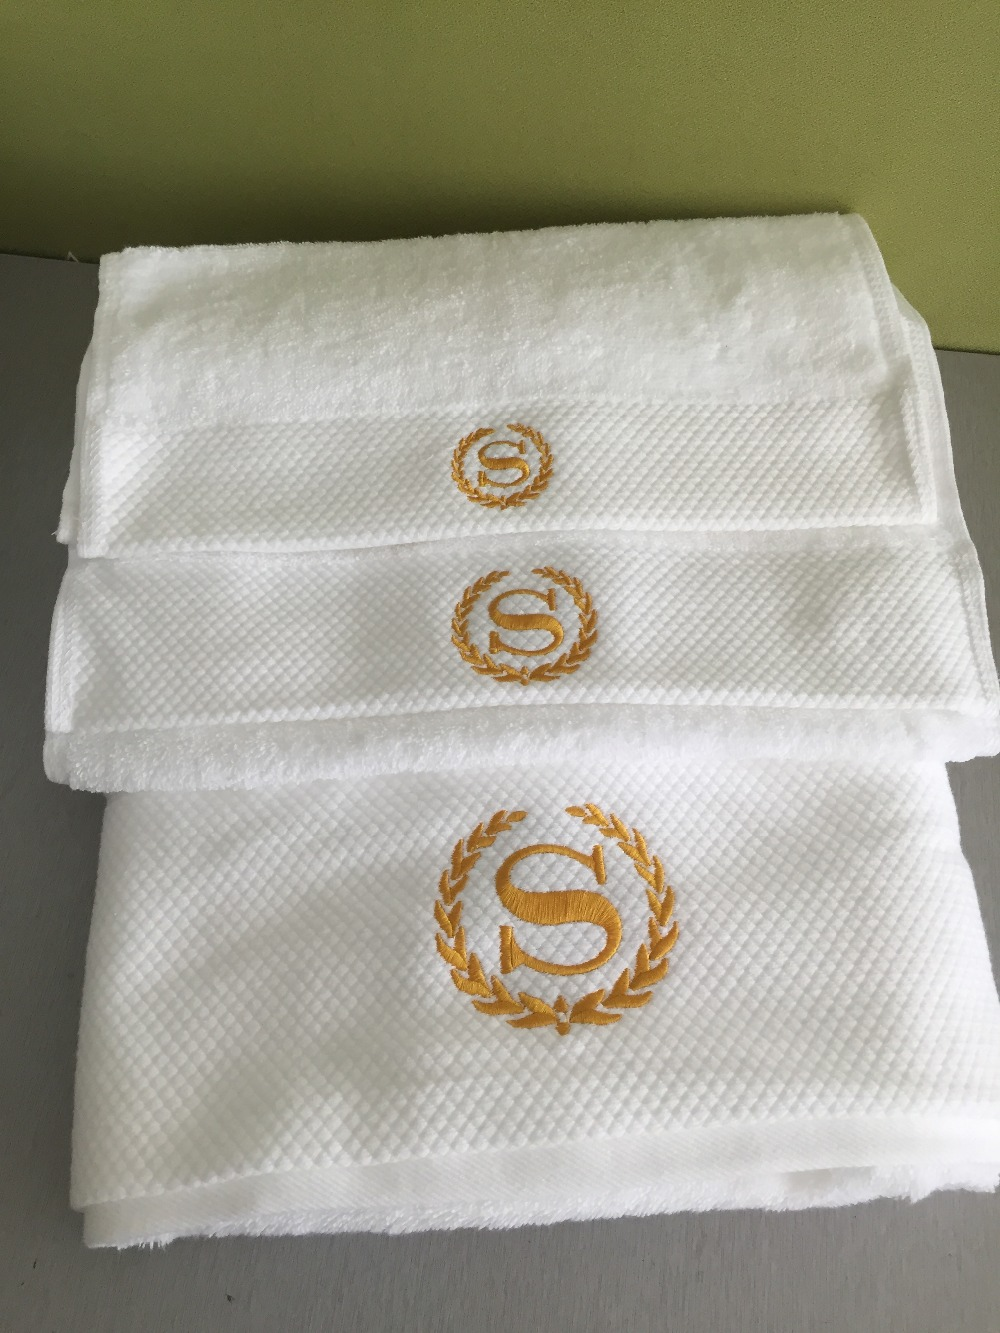 820G 100% Cotton 3 pcs Set Bath + Face + Hand Towels Set Golden S Letter Embroidery White Wash Hotel Beach Towels Home Textile(China (Mainland))